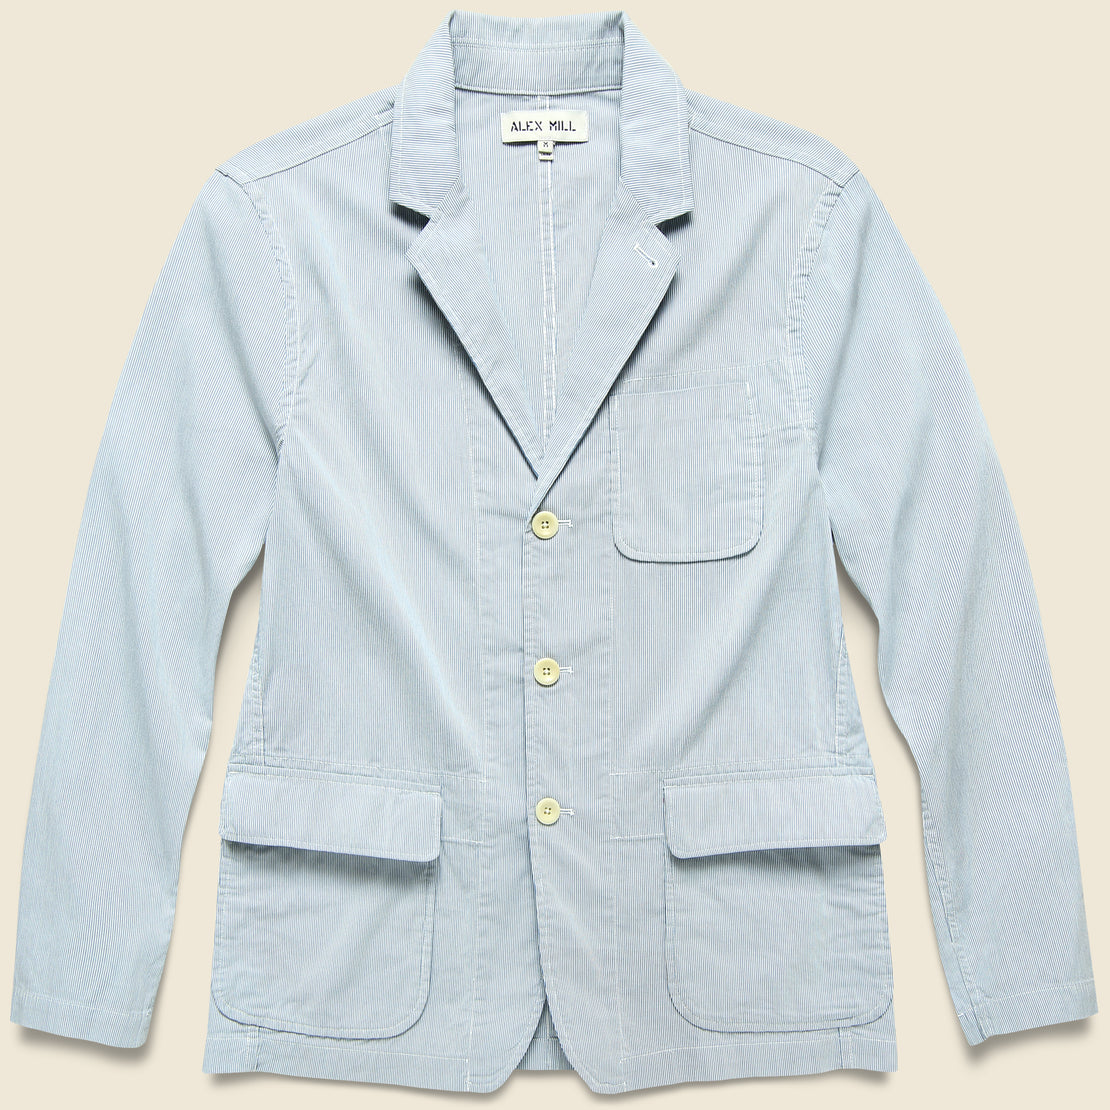 Alex Mill Striped Sack Jacket - Blue/White